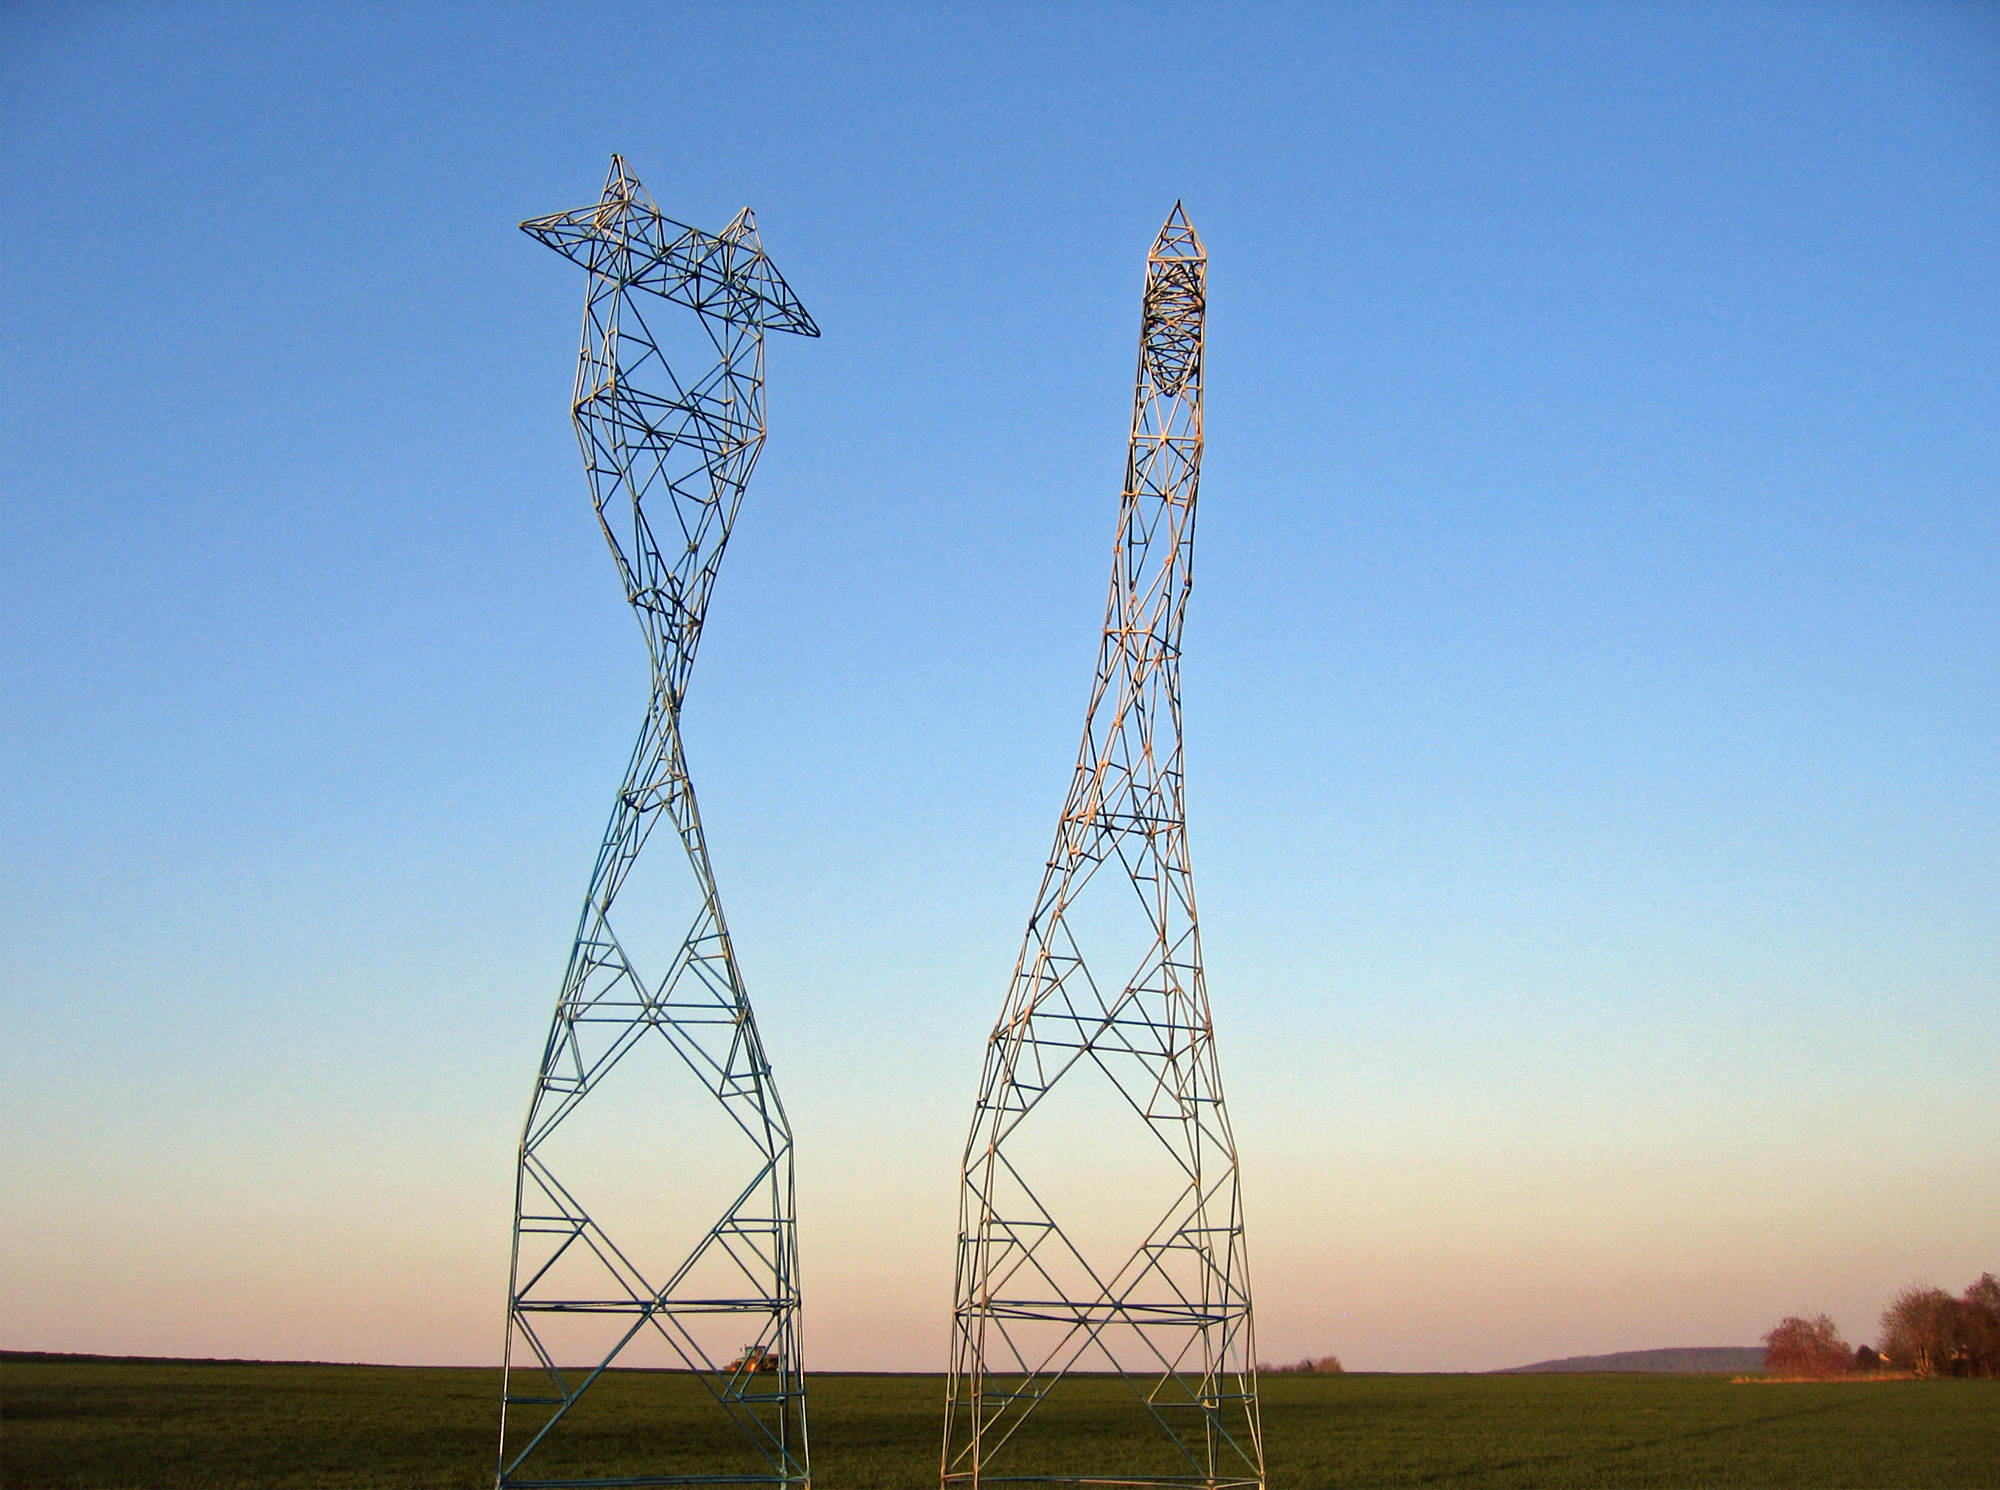 Twisted Pylons, Sculpture-Pylons